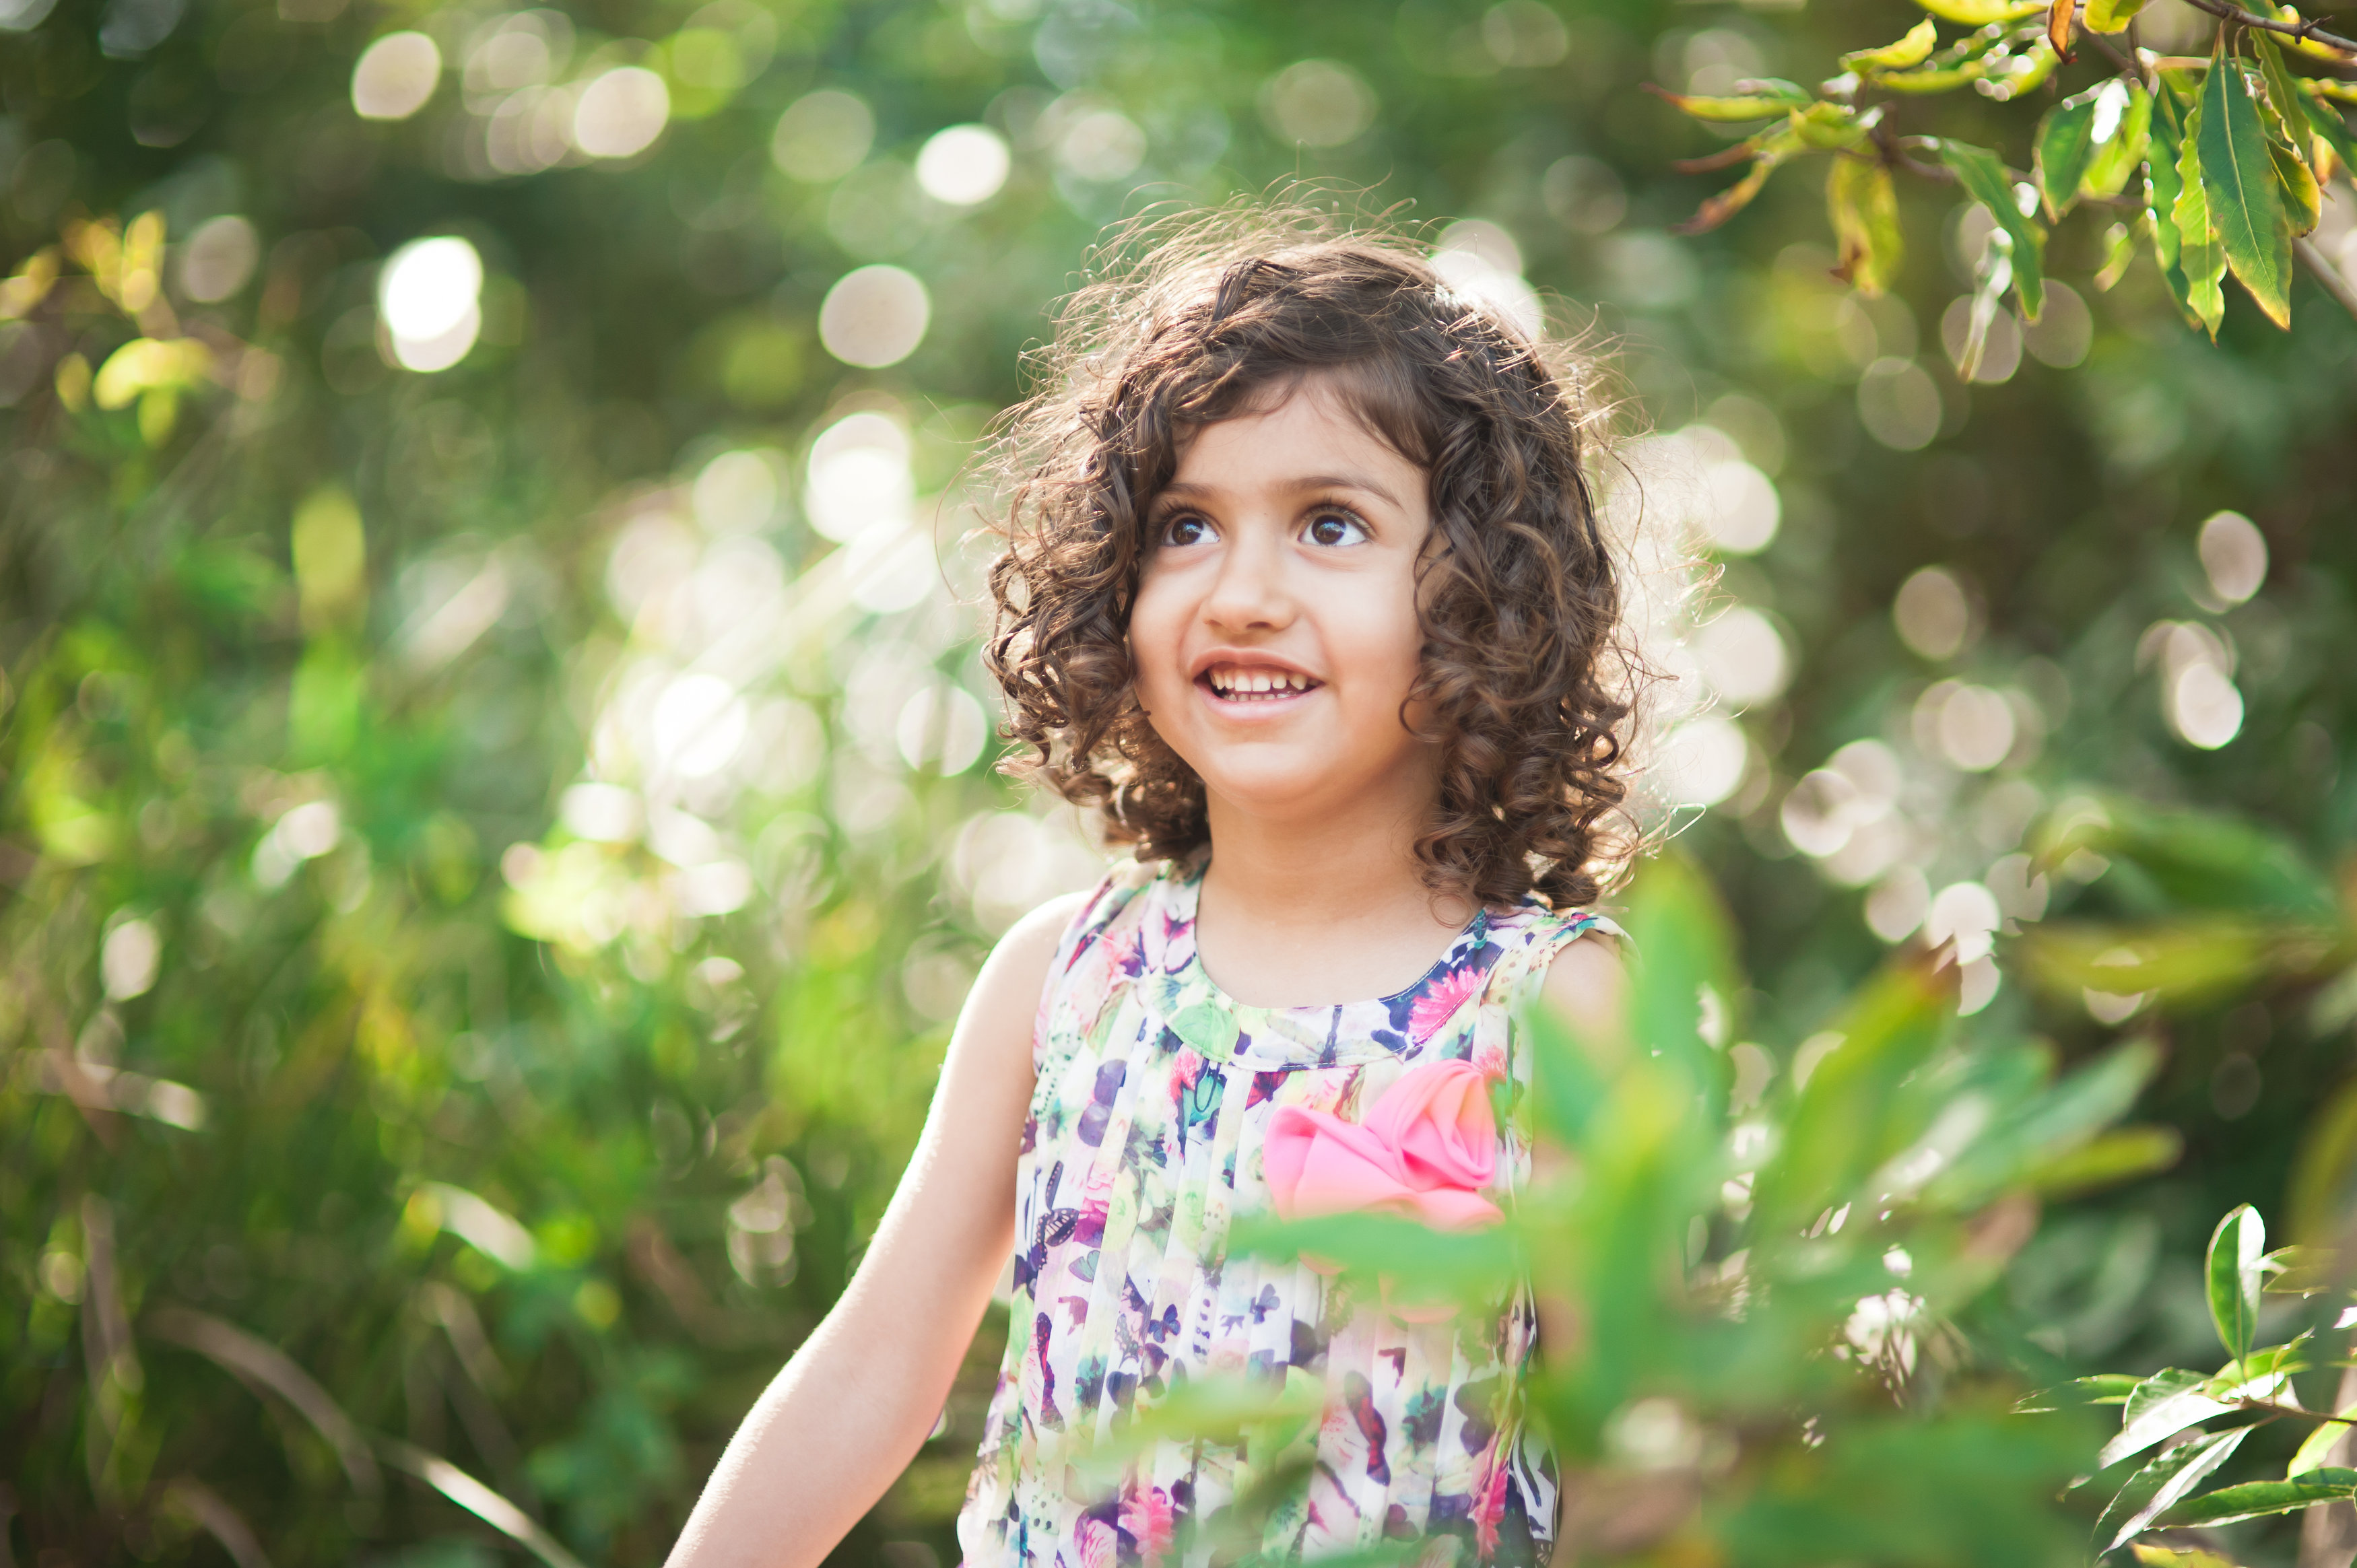 little girl with brown curly hair